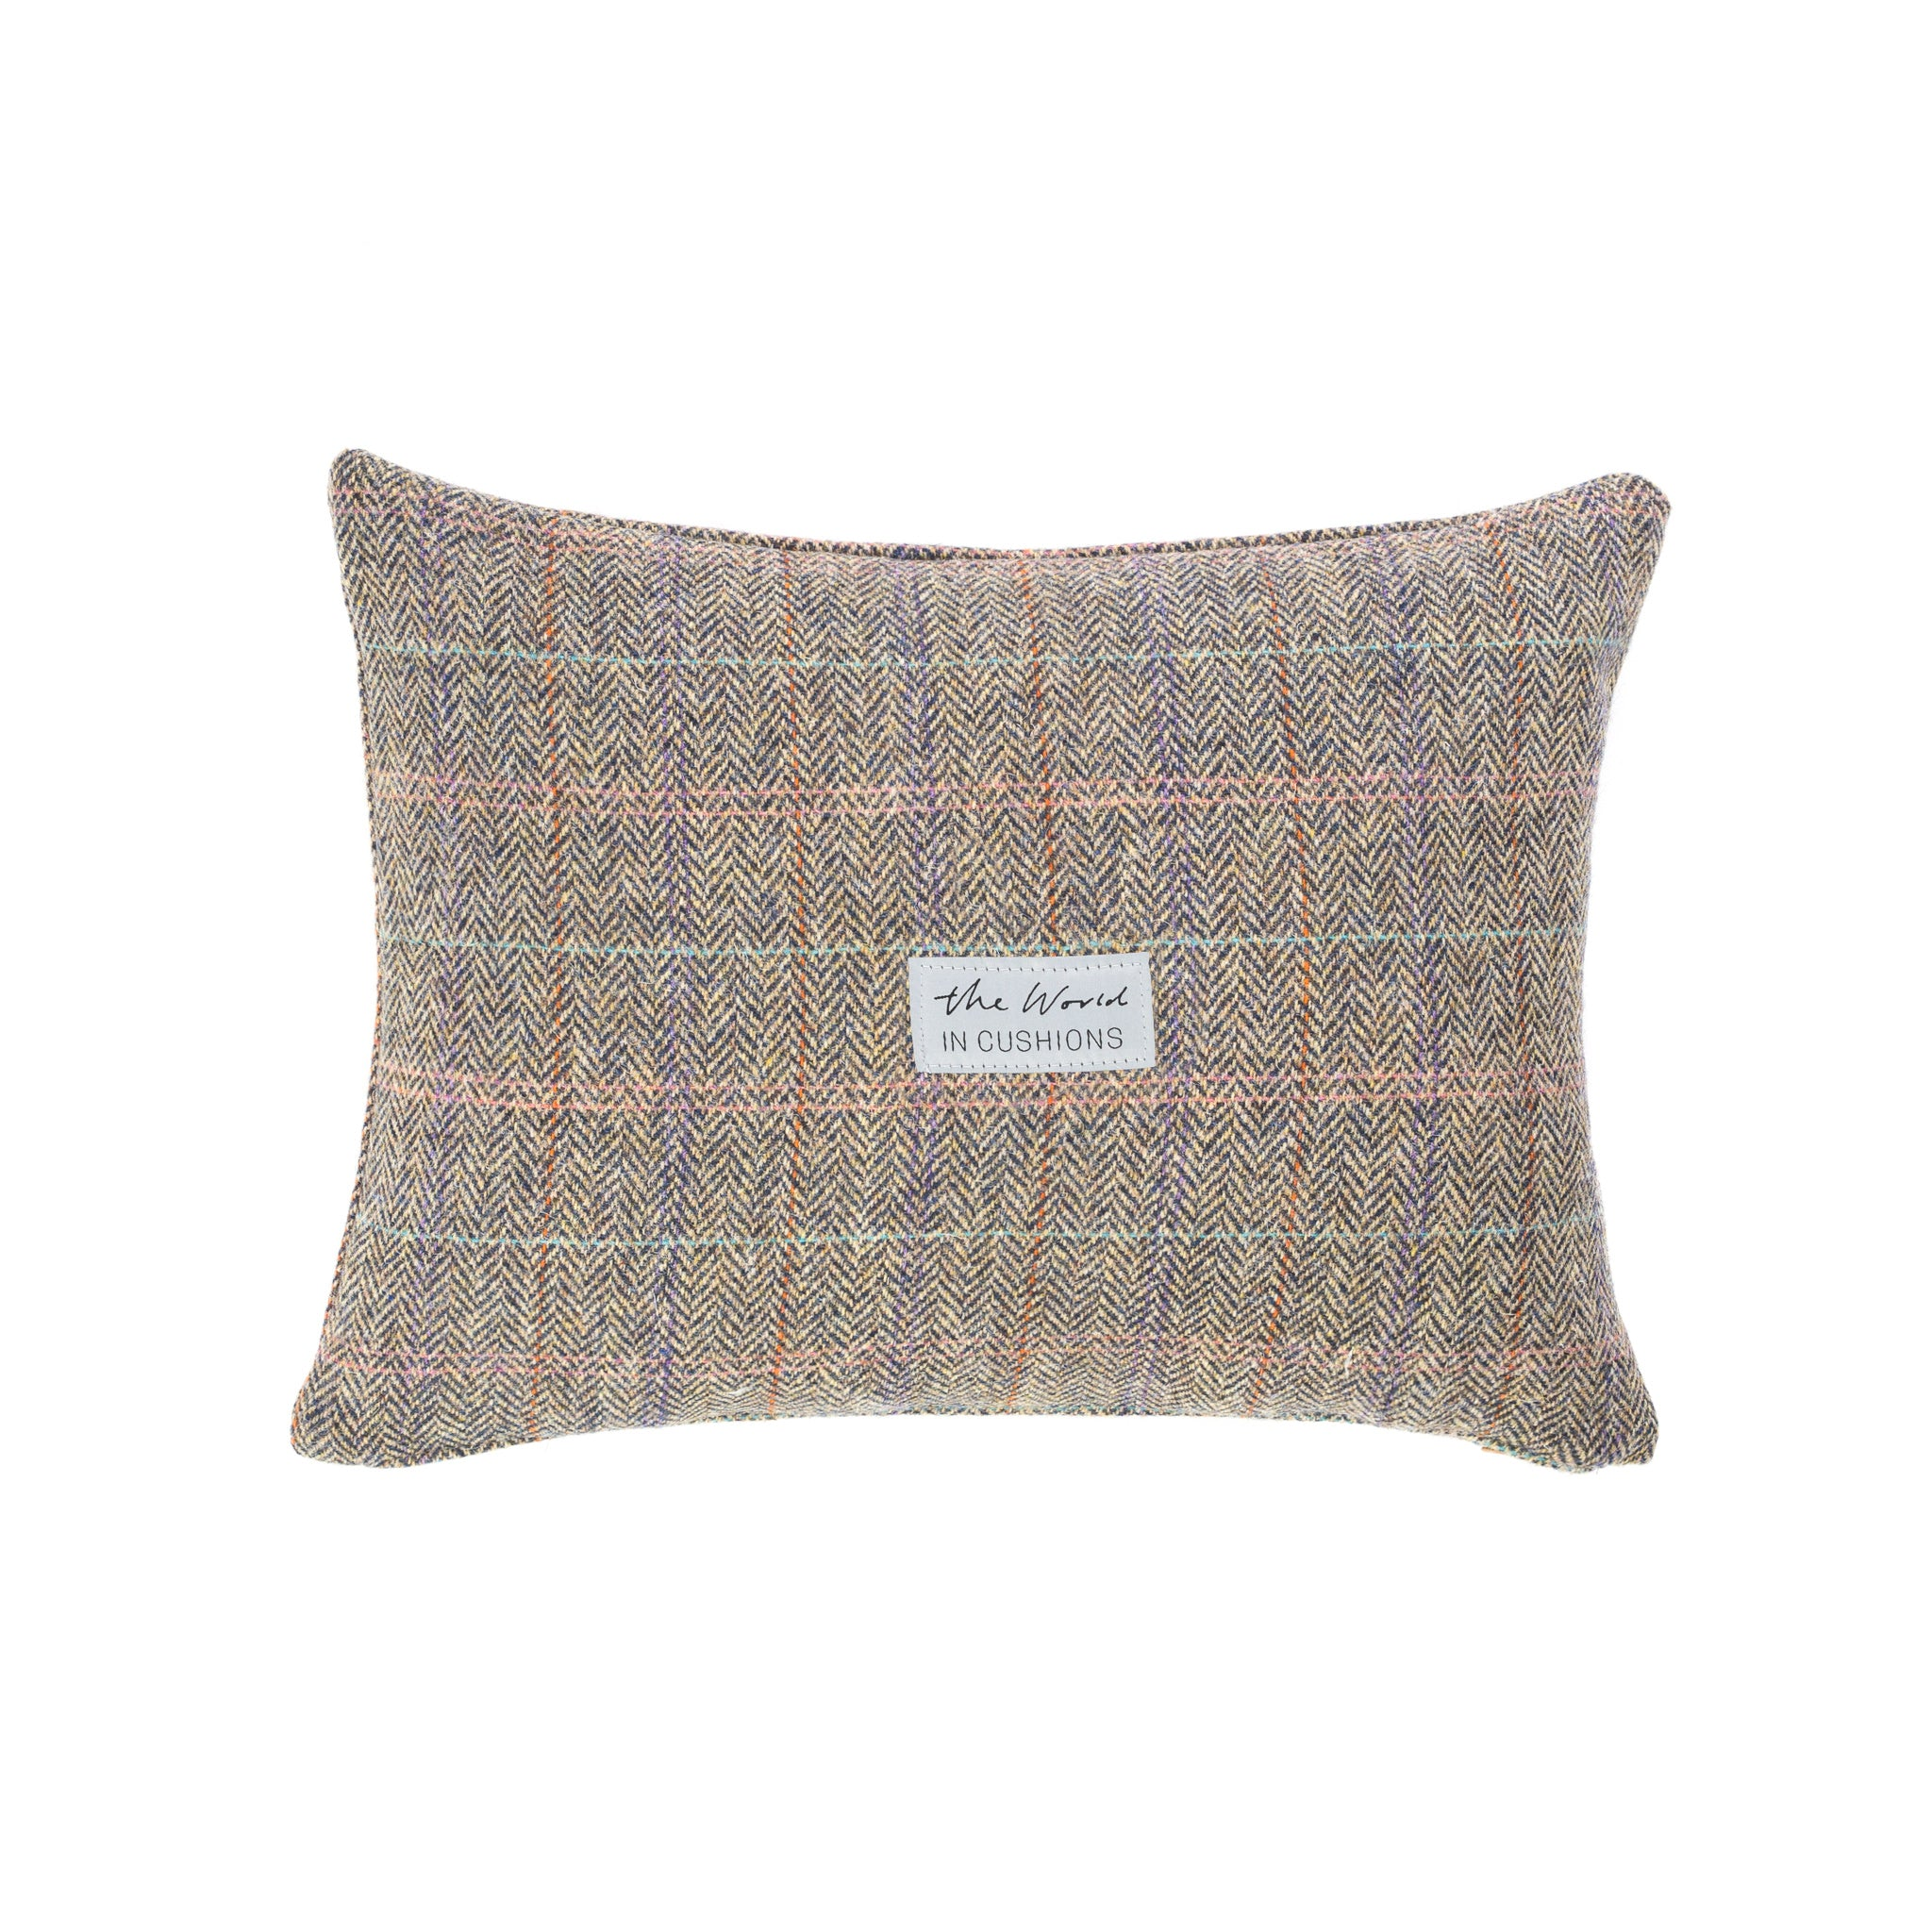 Harris Tweed/Pure Wool/Outer Hebrides/Scatter/Cushion/Beige/Purple/Pink/Pale Blue/Check/Back/